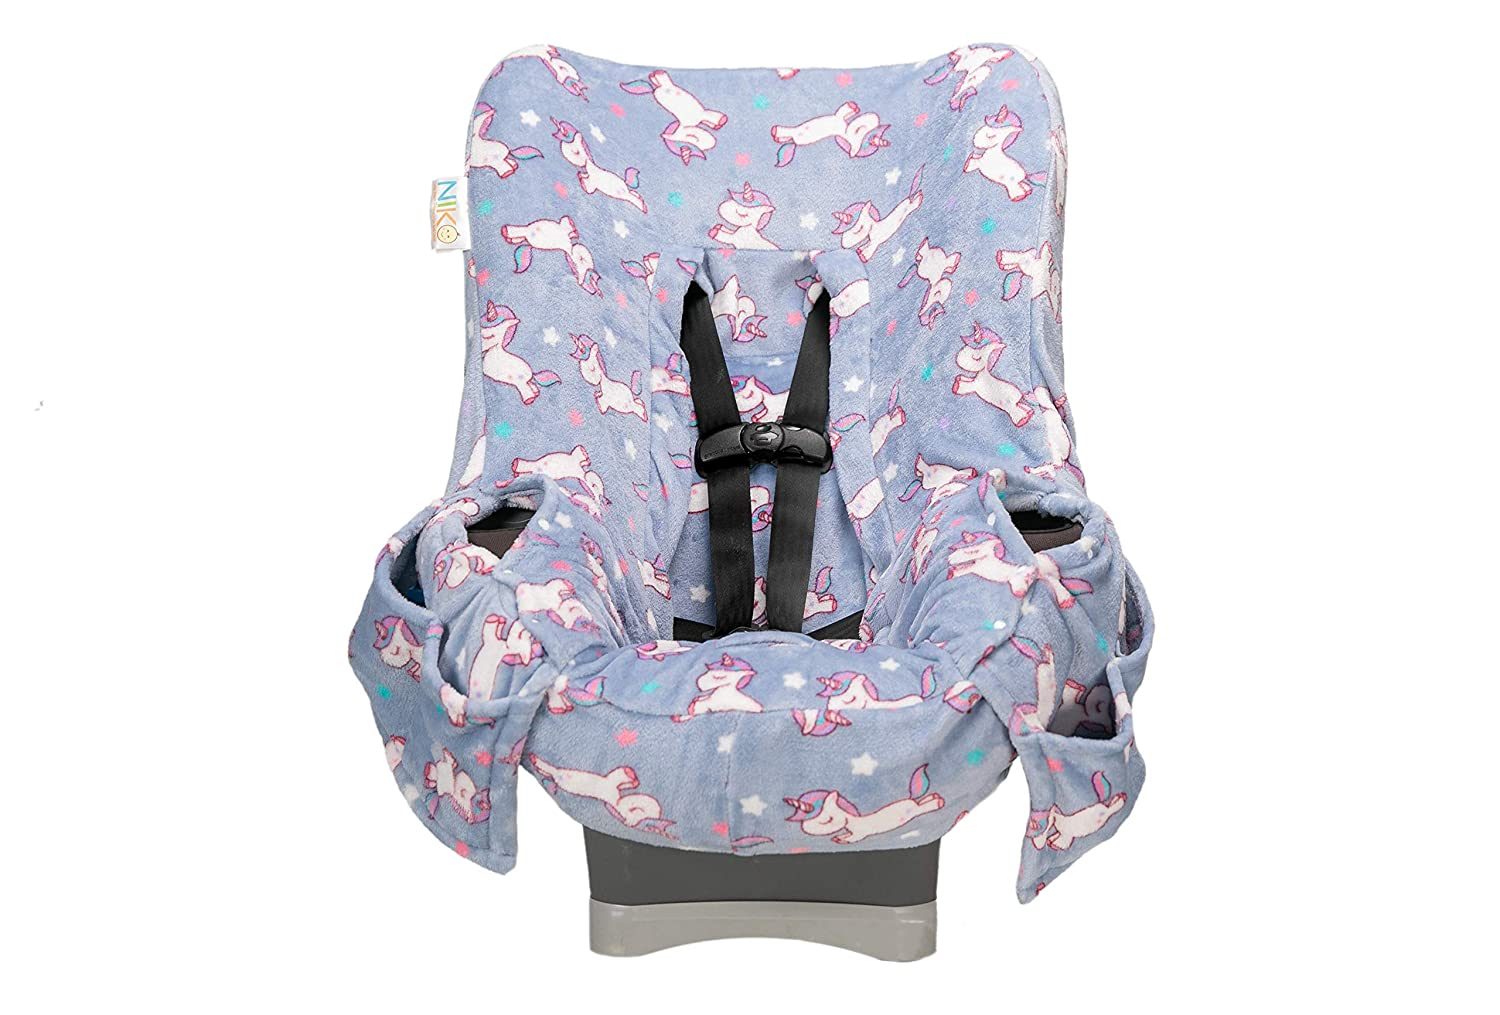 Niko Easy Wash Children's Car Seat Cover & Liner - Unicorn Minky - Perfect for Cooler Weather-Universal Fit -Crash Tested -Waterproof SEAT Bottom -Mess Protection -Easy to Clean - Machine Washable